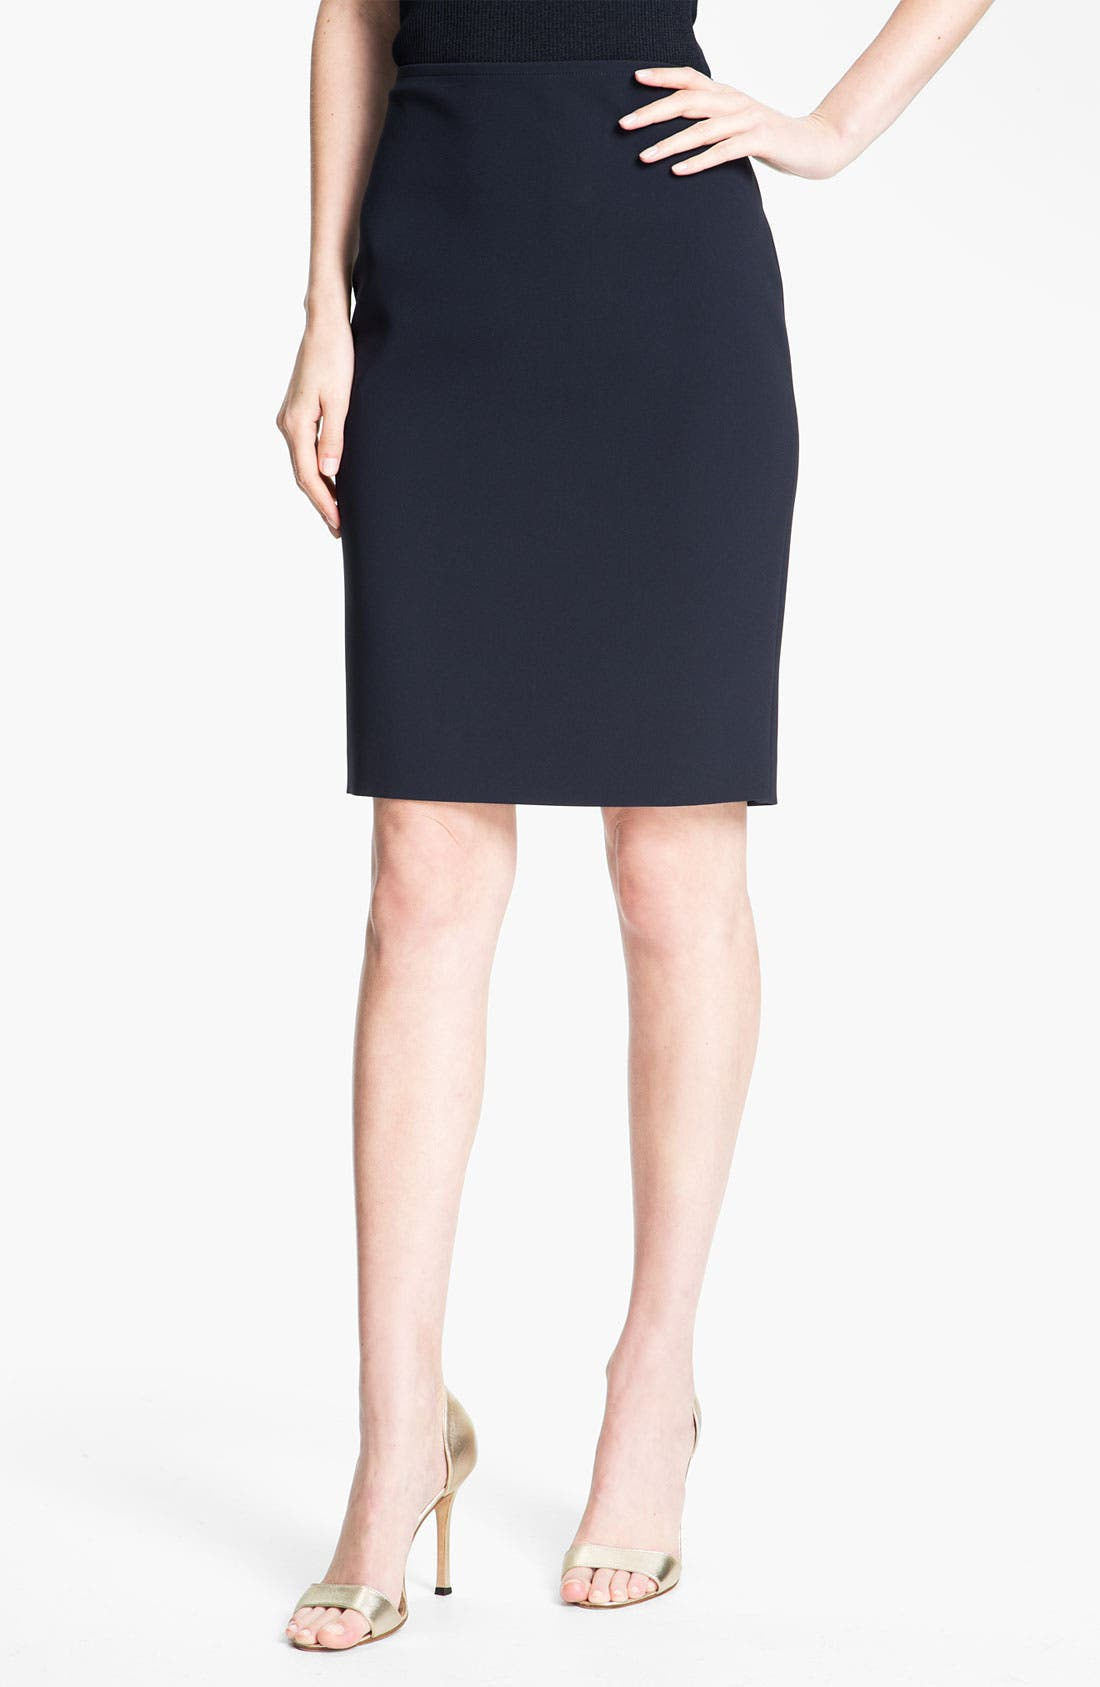 Alternate Image 1 Selected - St. John Collection Crepe Marocain Pencil Skirt